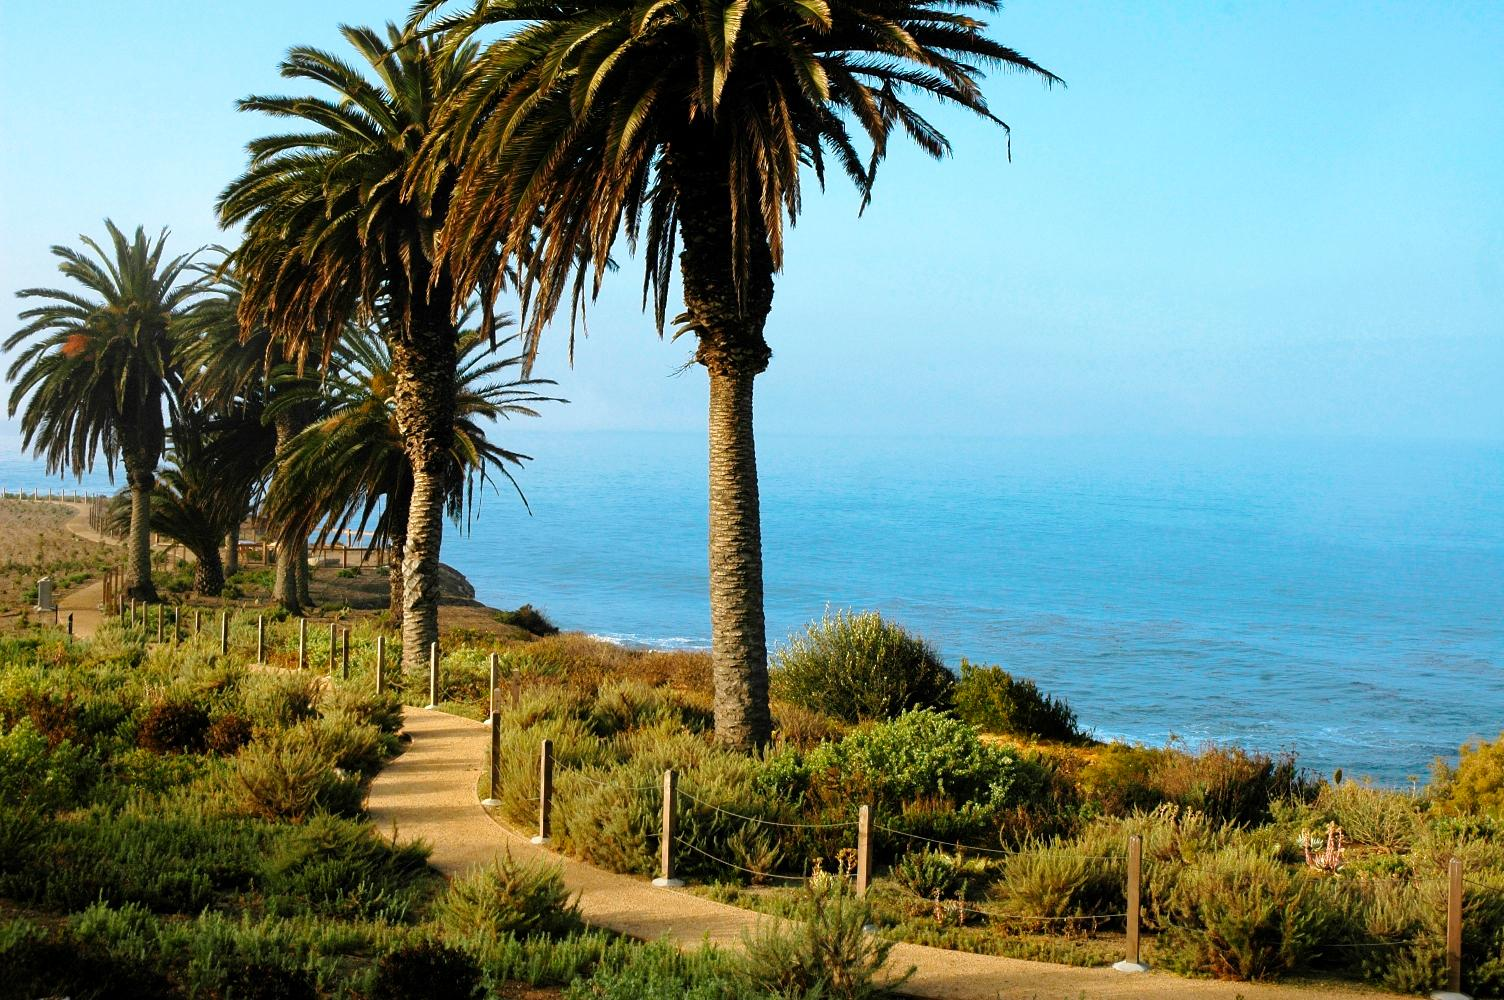 Coastal walking trails